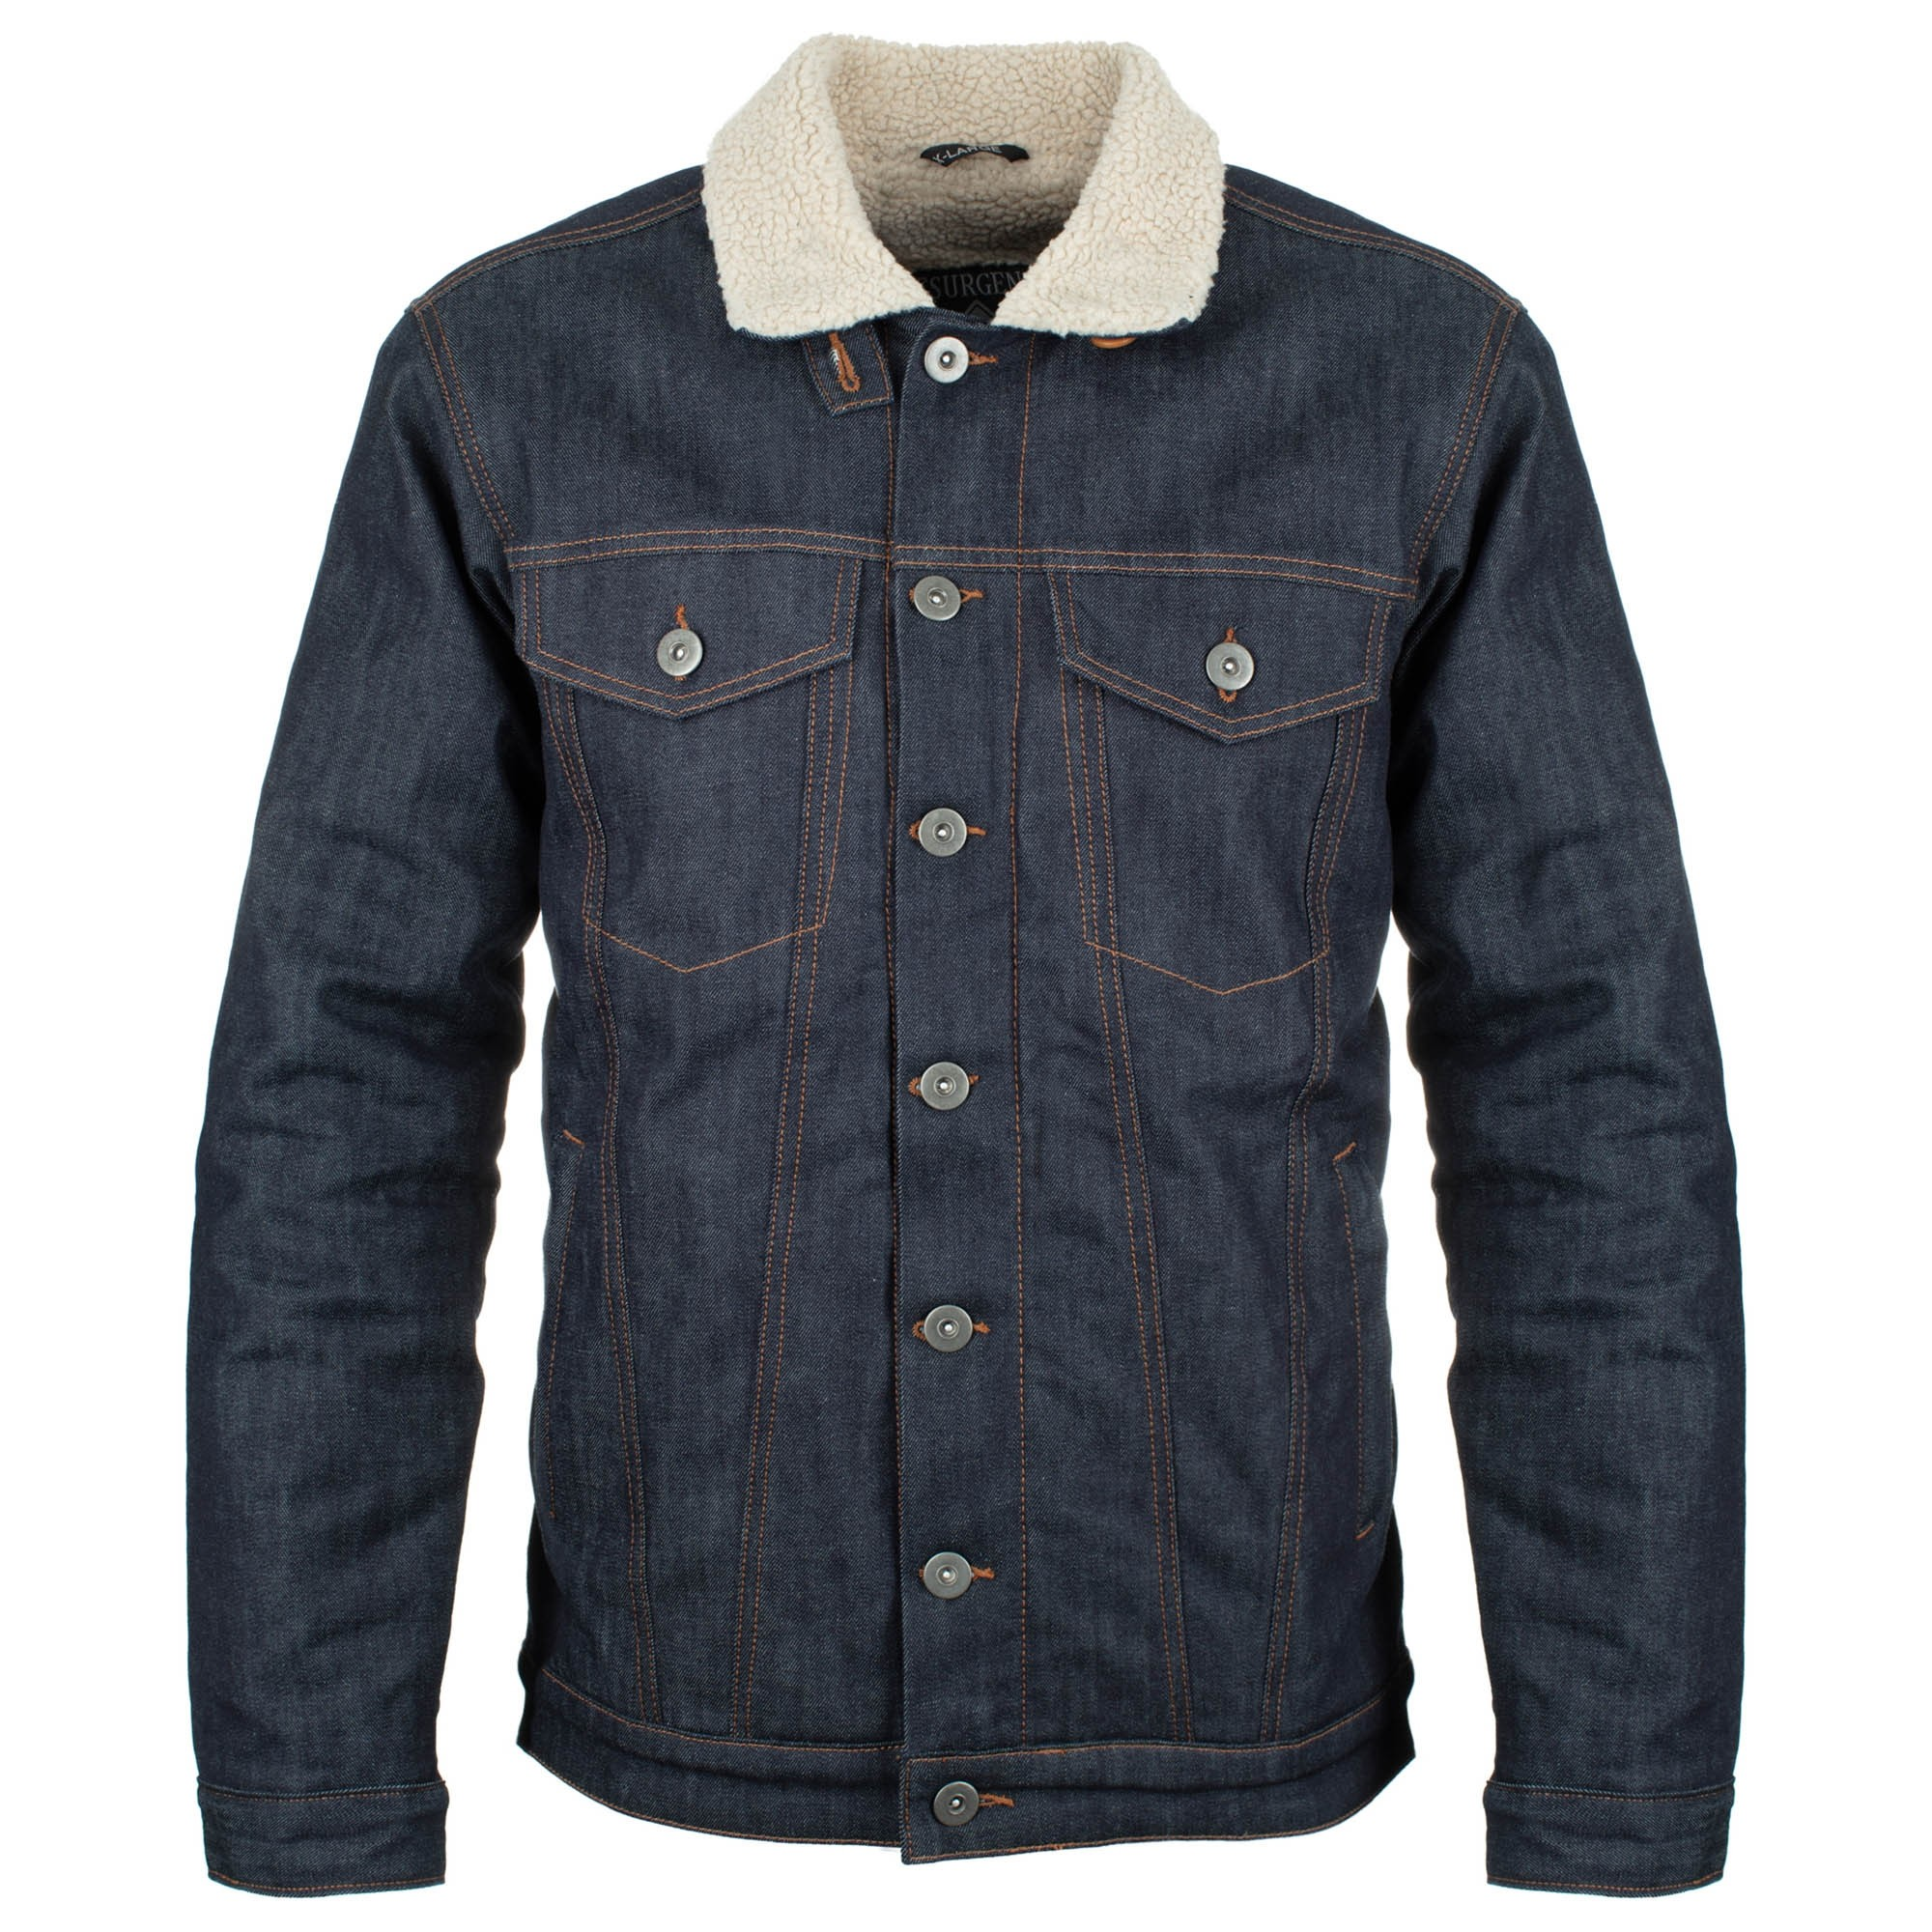 SHERPA JACKET : BLUE